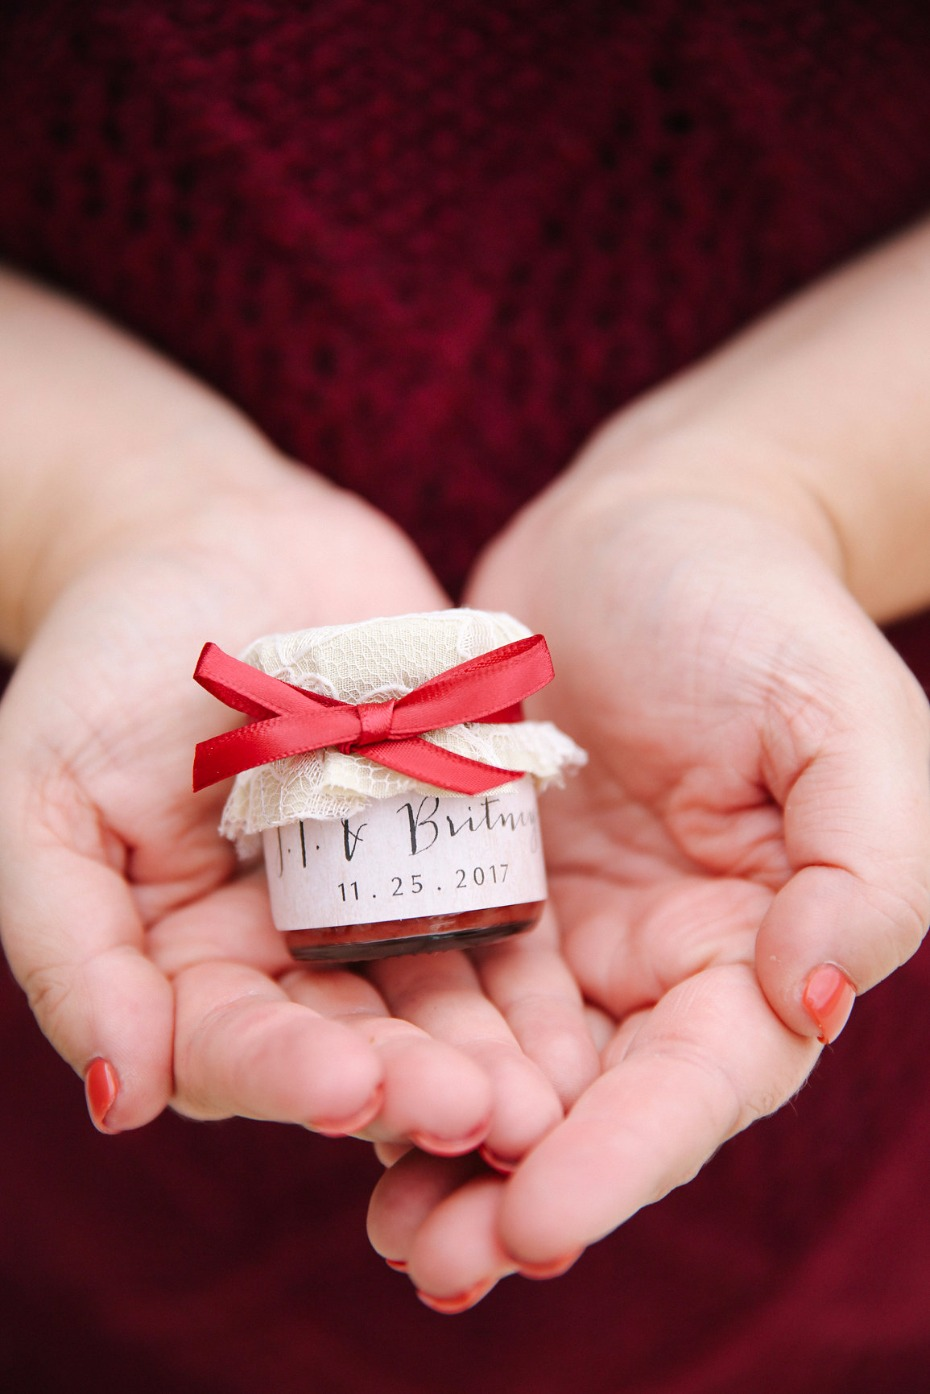 mini jar of jam wedding favor